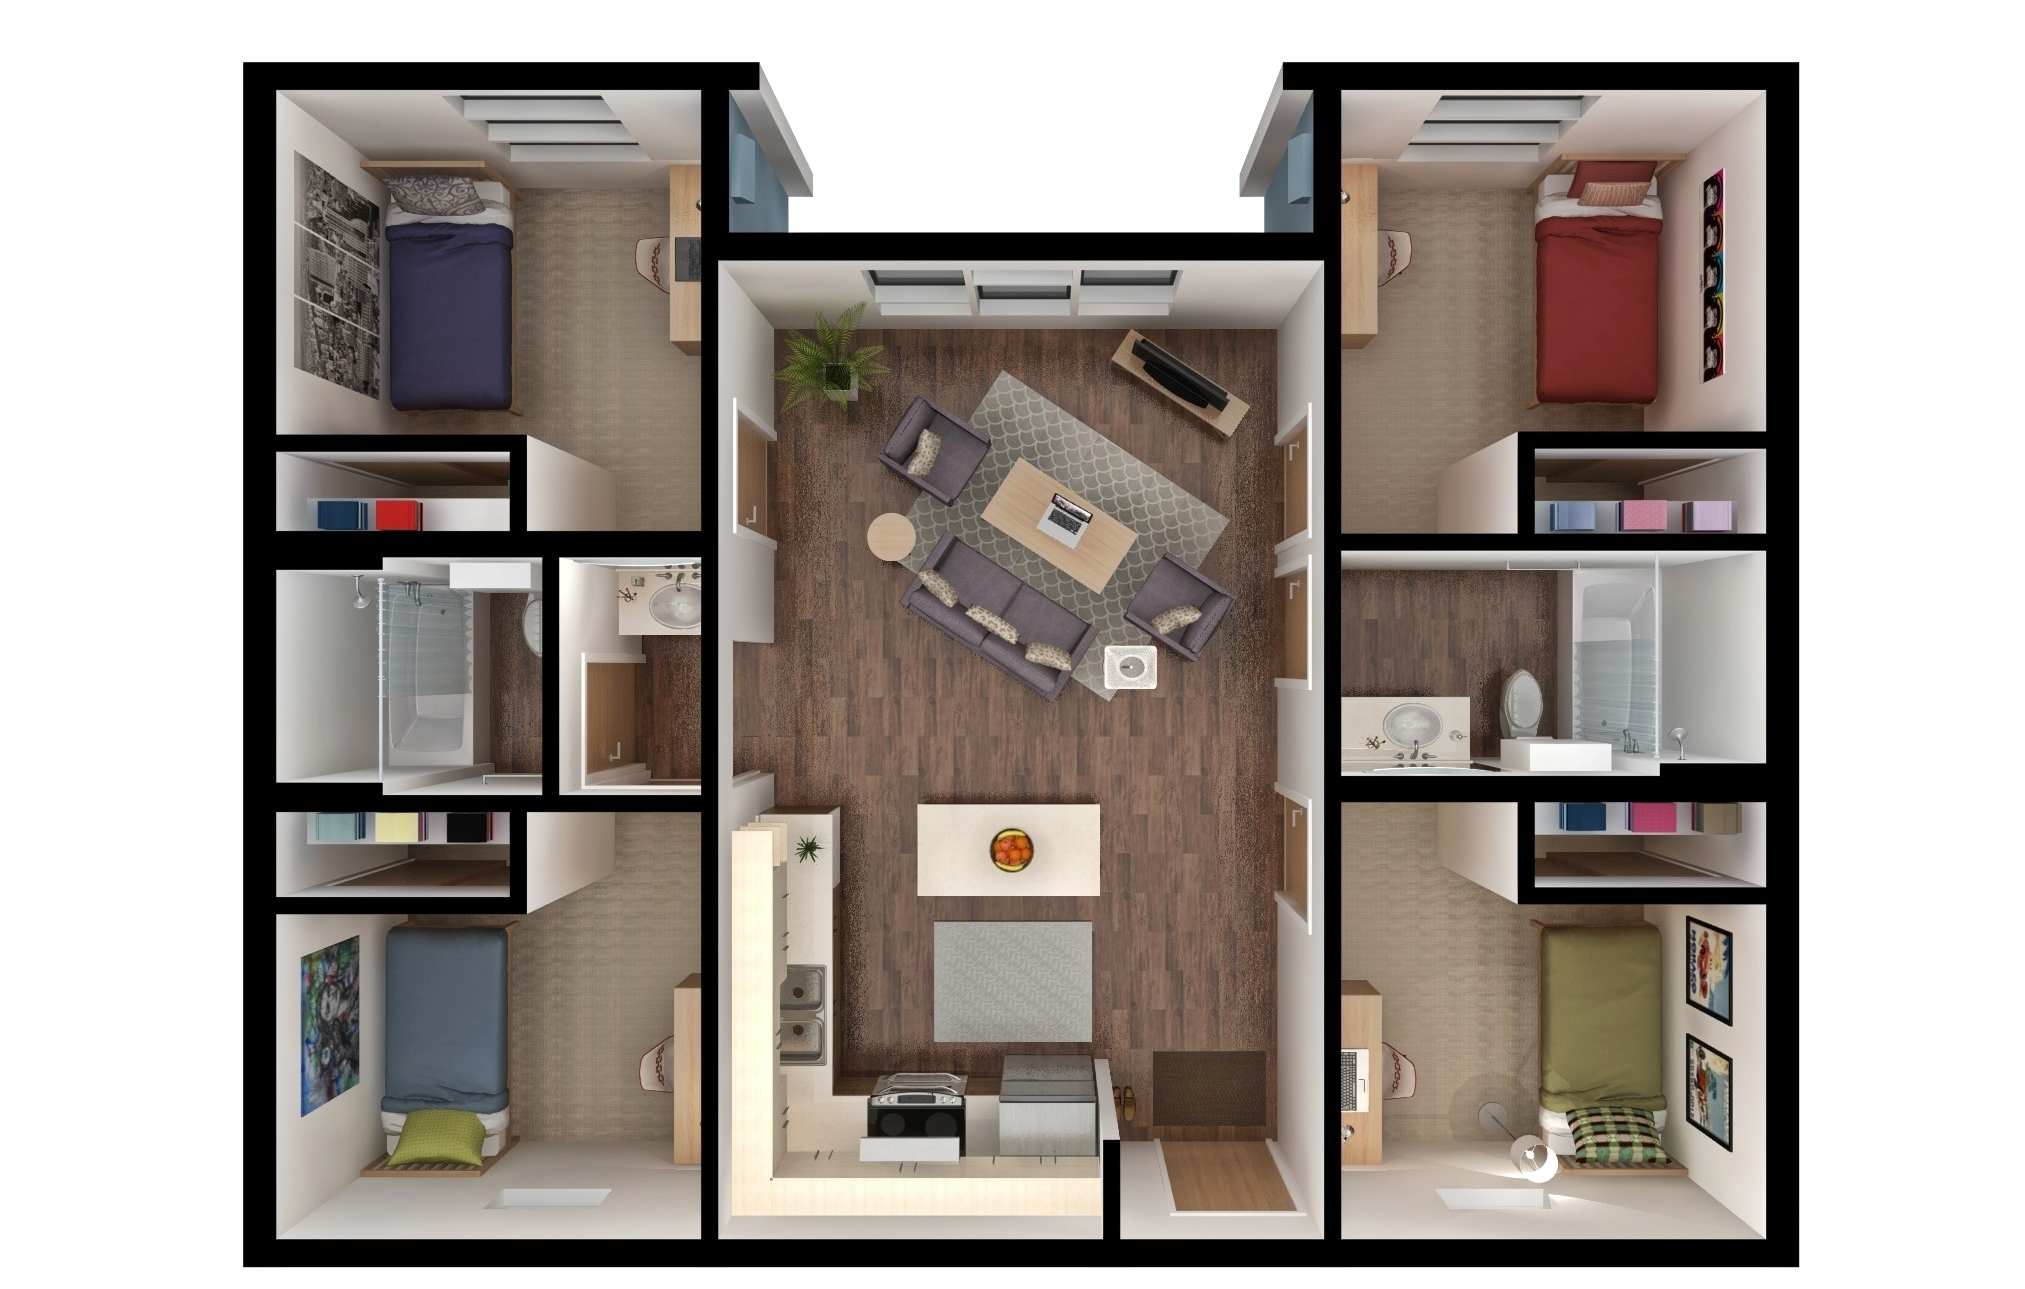 Four bedroom unit rendering